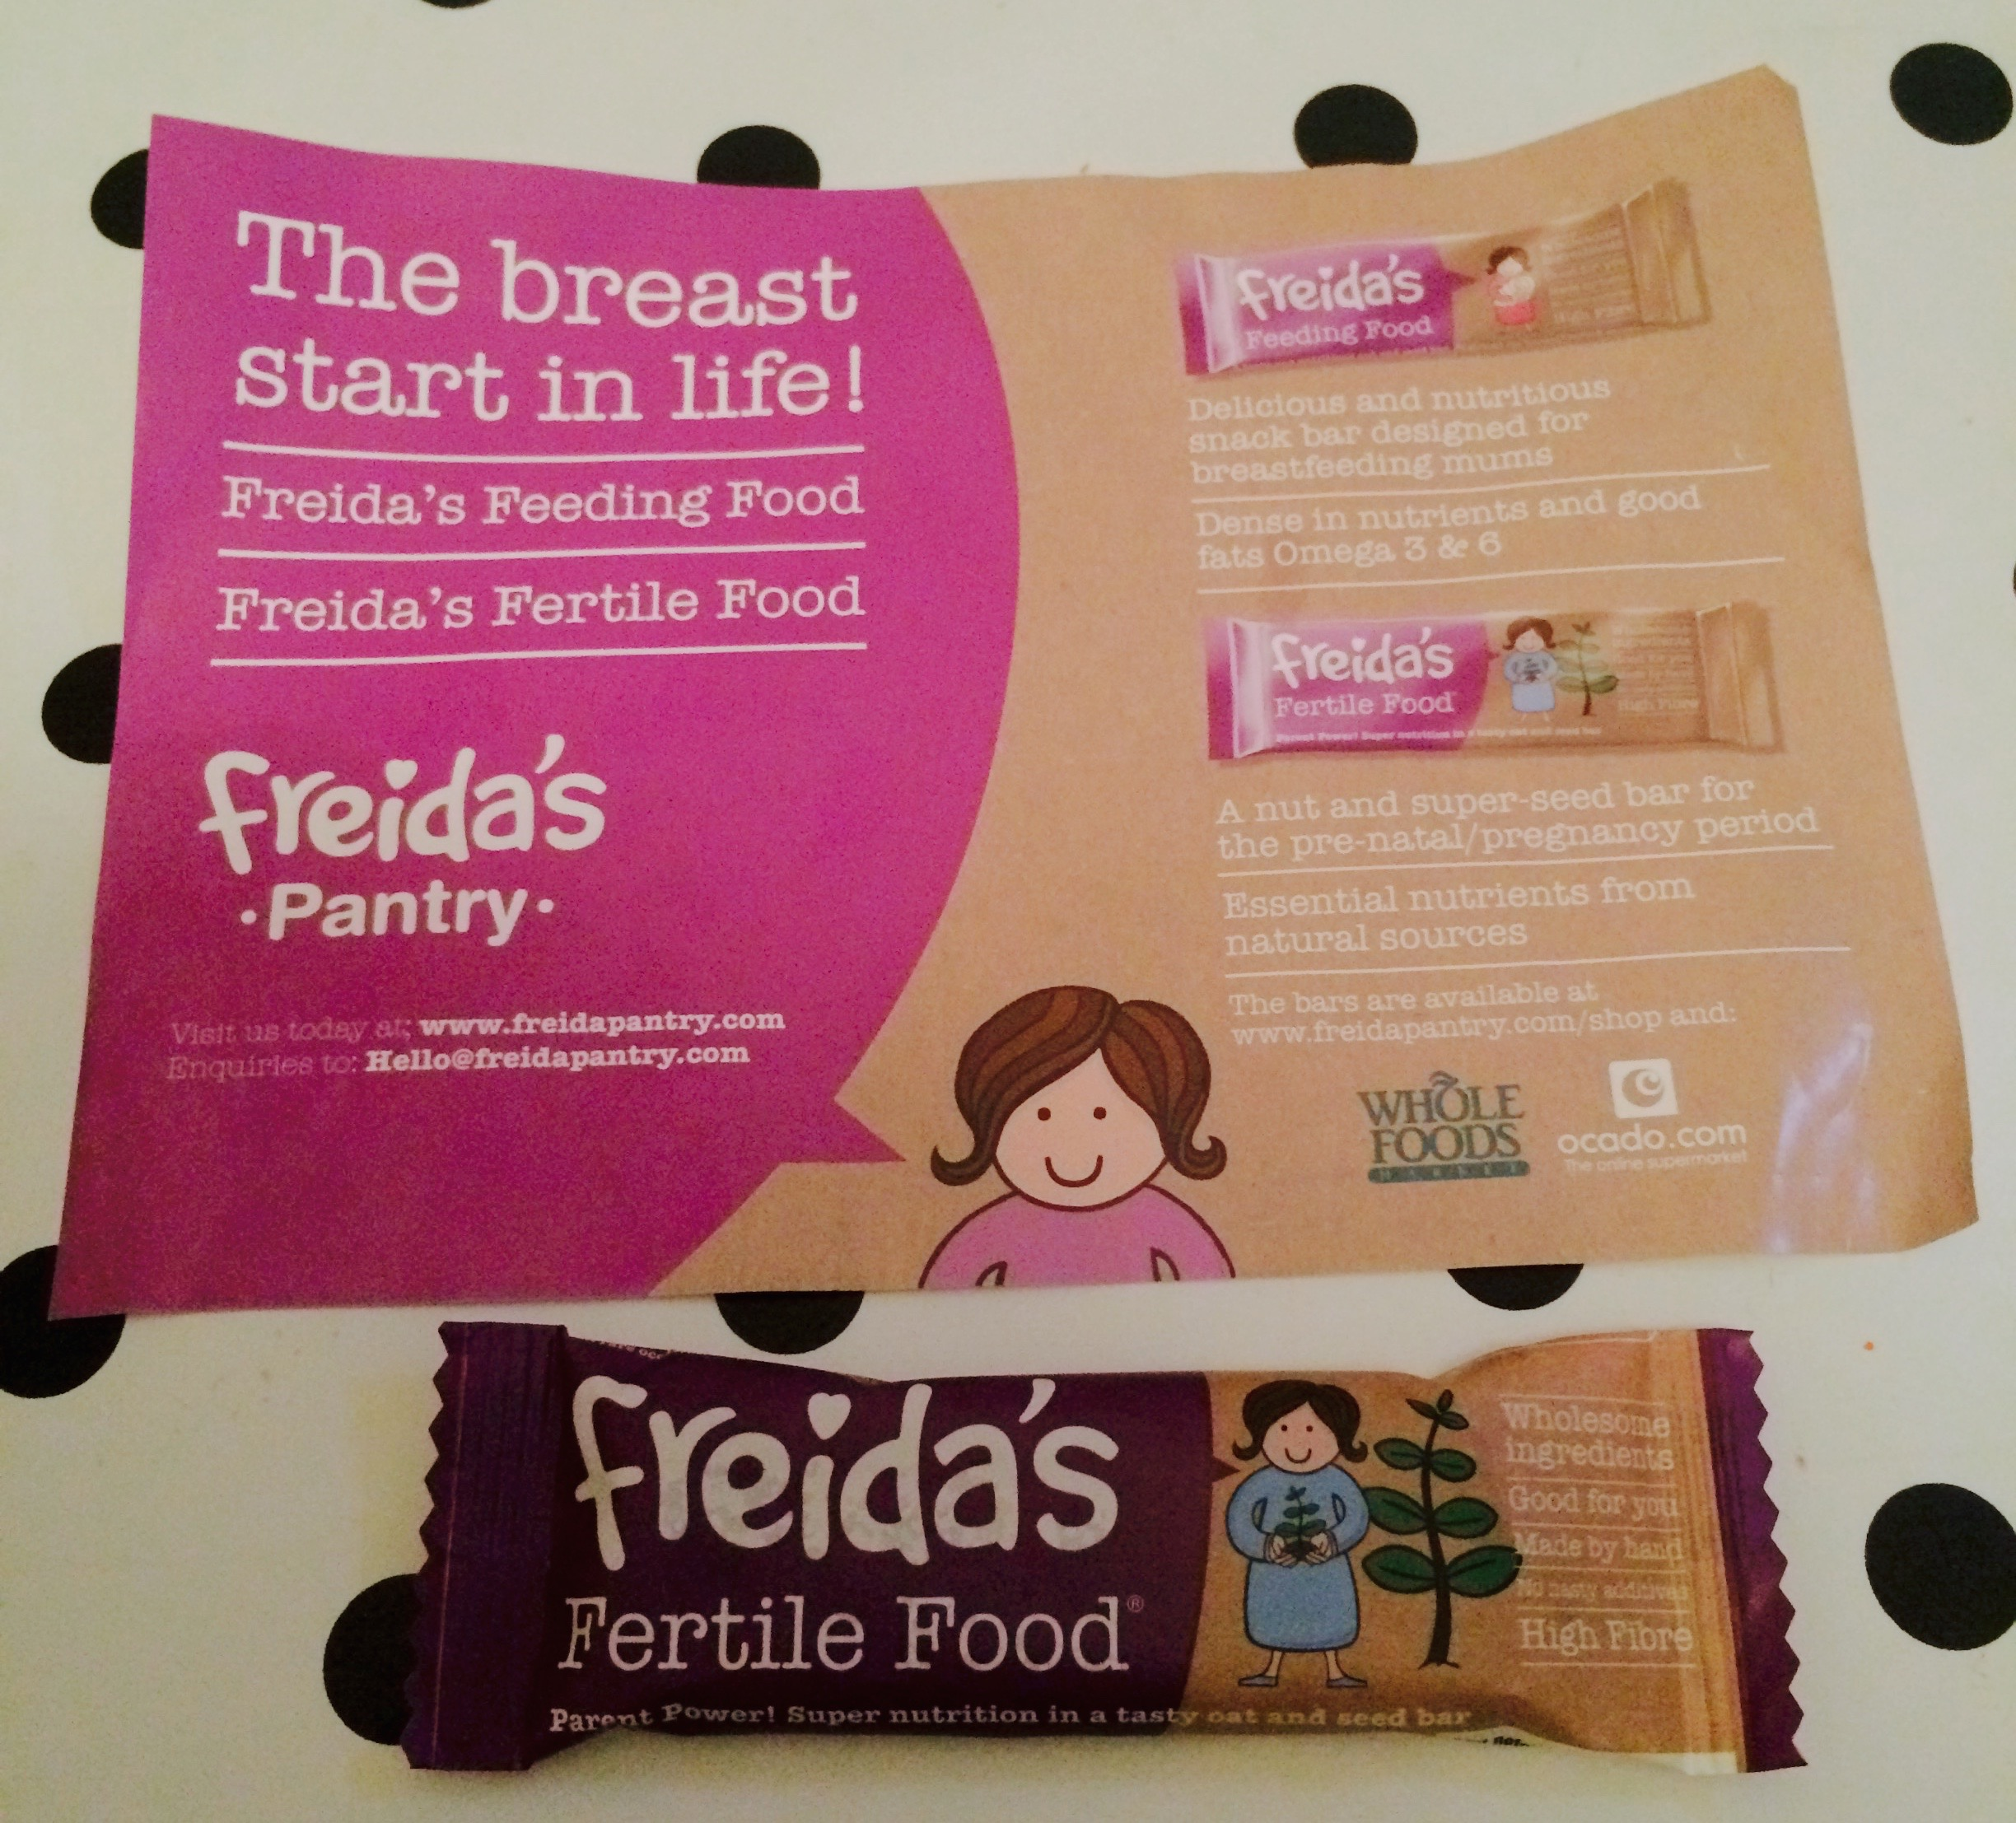 Freida's Pantry Fertile Bars